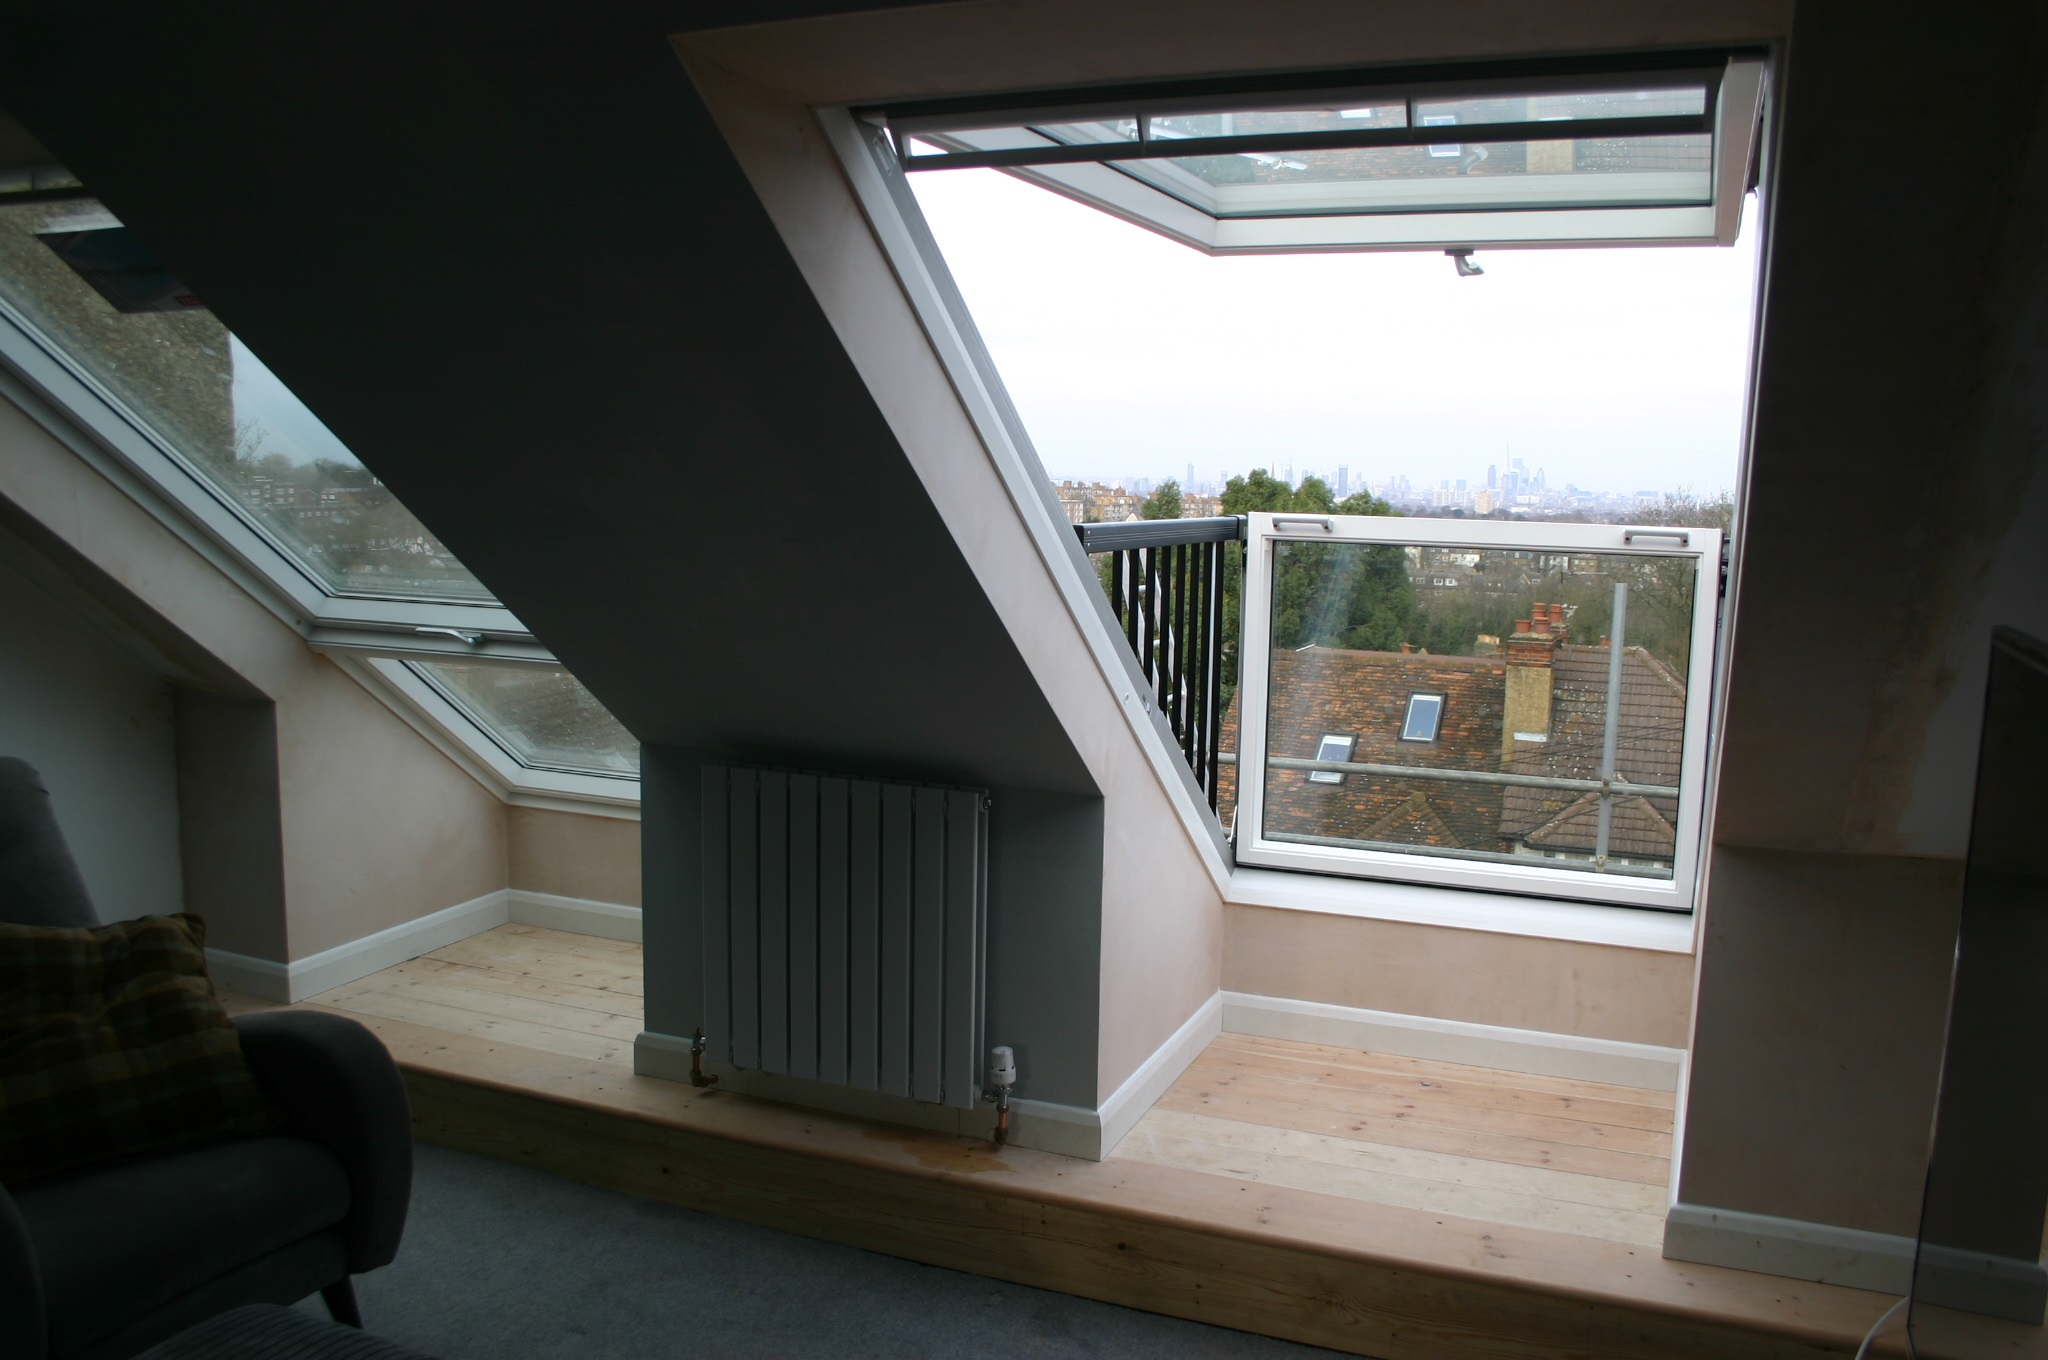 attic cleaning ideas - VELUX ROOF WINDOWS Installers Fitters & Suppliers